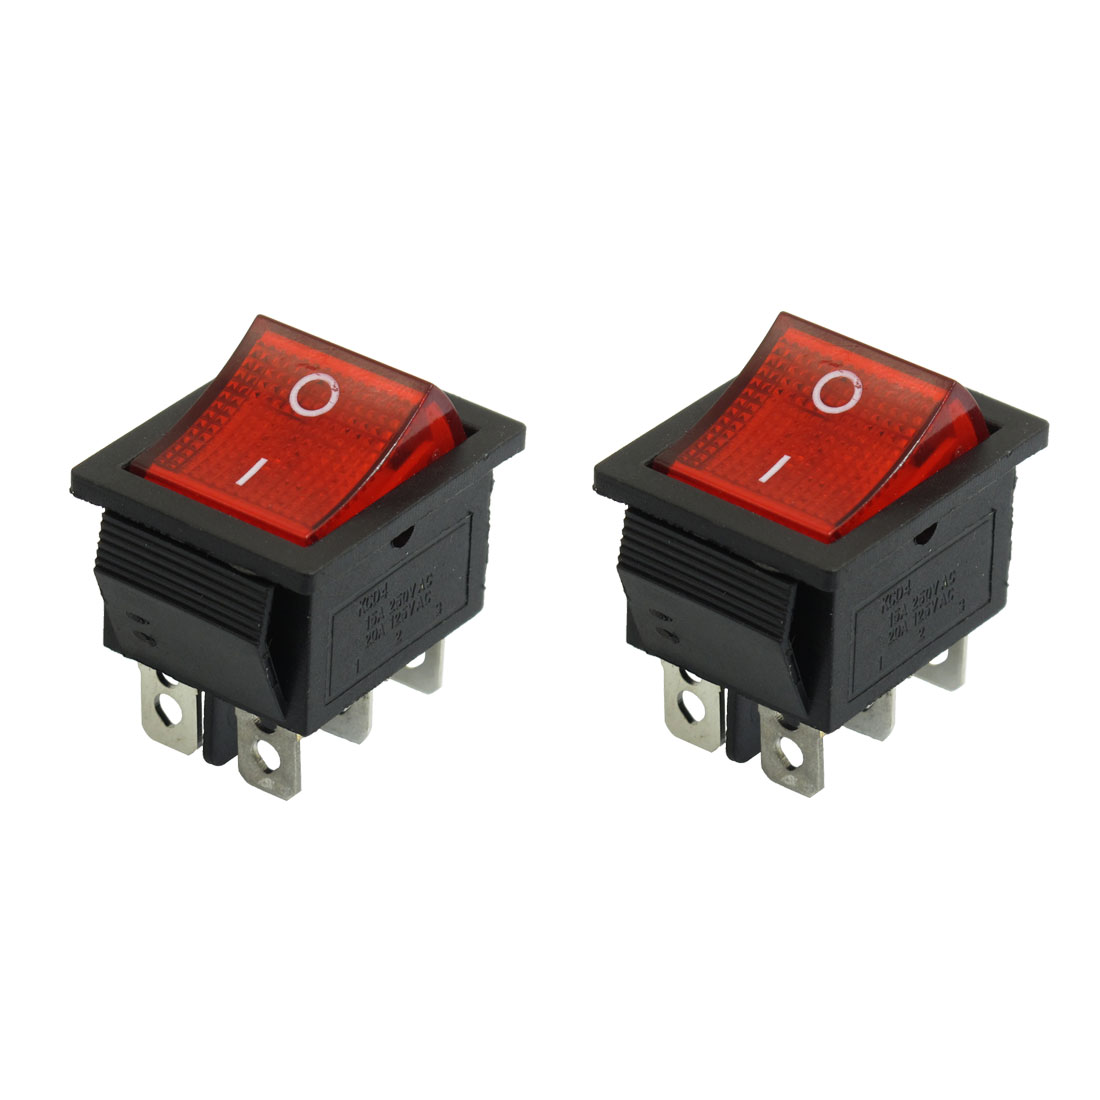 2 Pcs 250VAC 15A 125V 20A Red Light 6 Pin DPDT Snap in Boat Rocker Switch